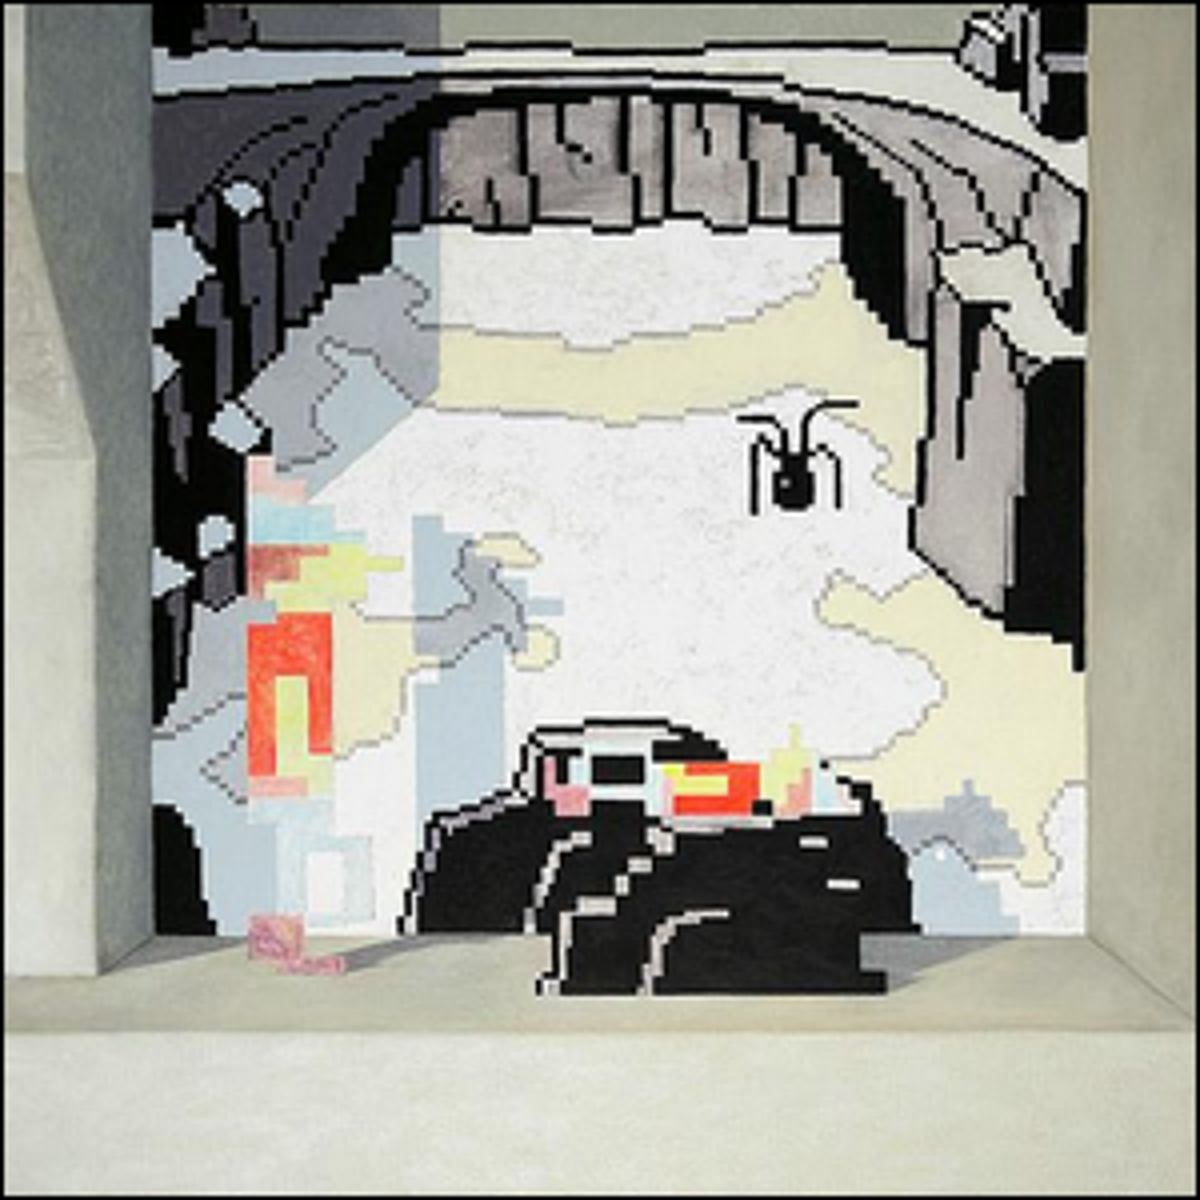 An image of one of Kristoffer Zetterstrand's well-known video game inspired paintings.